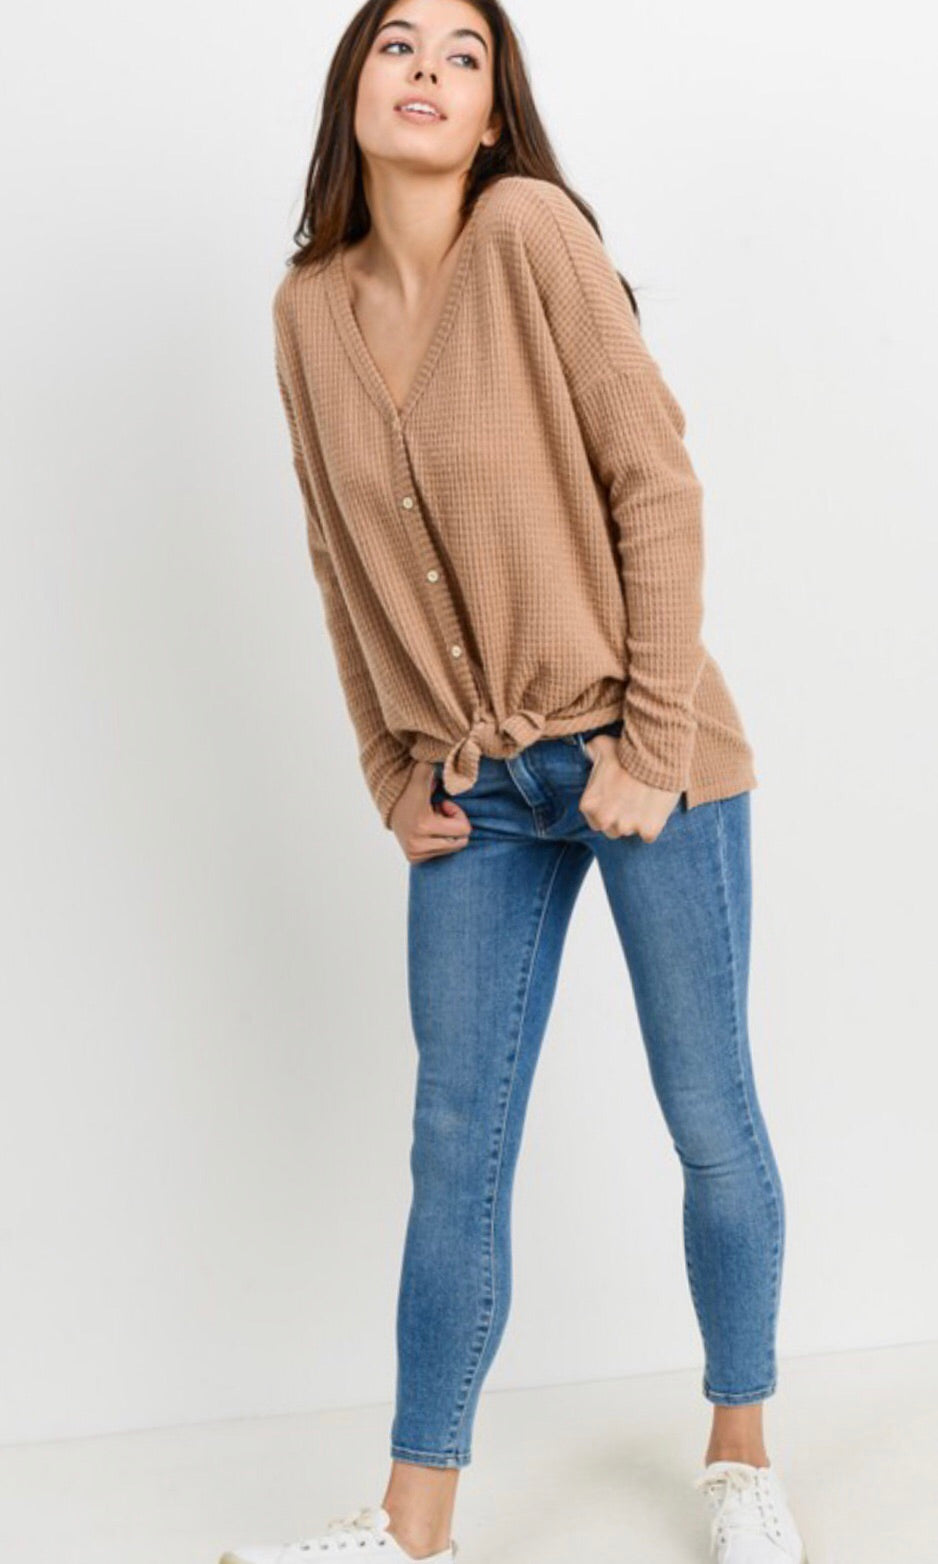 The Beckett Top in Taupe